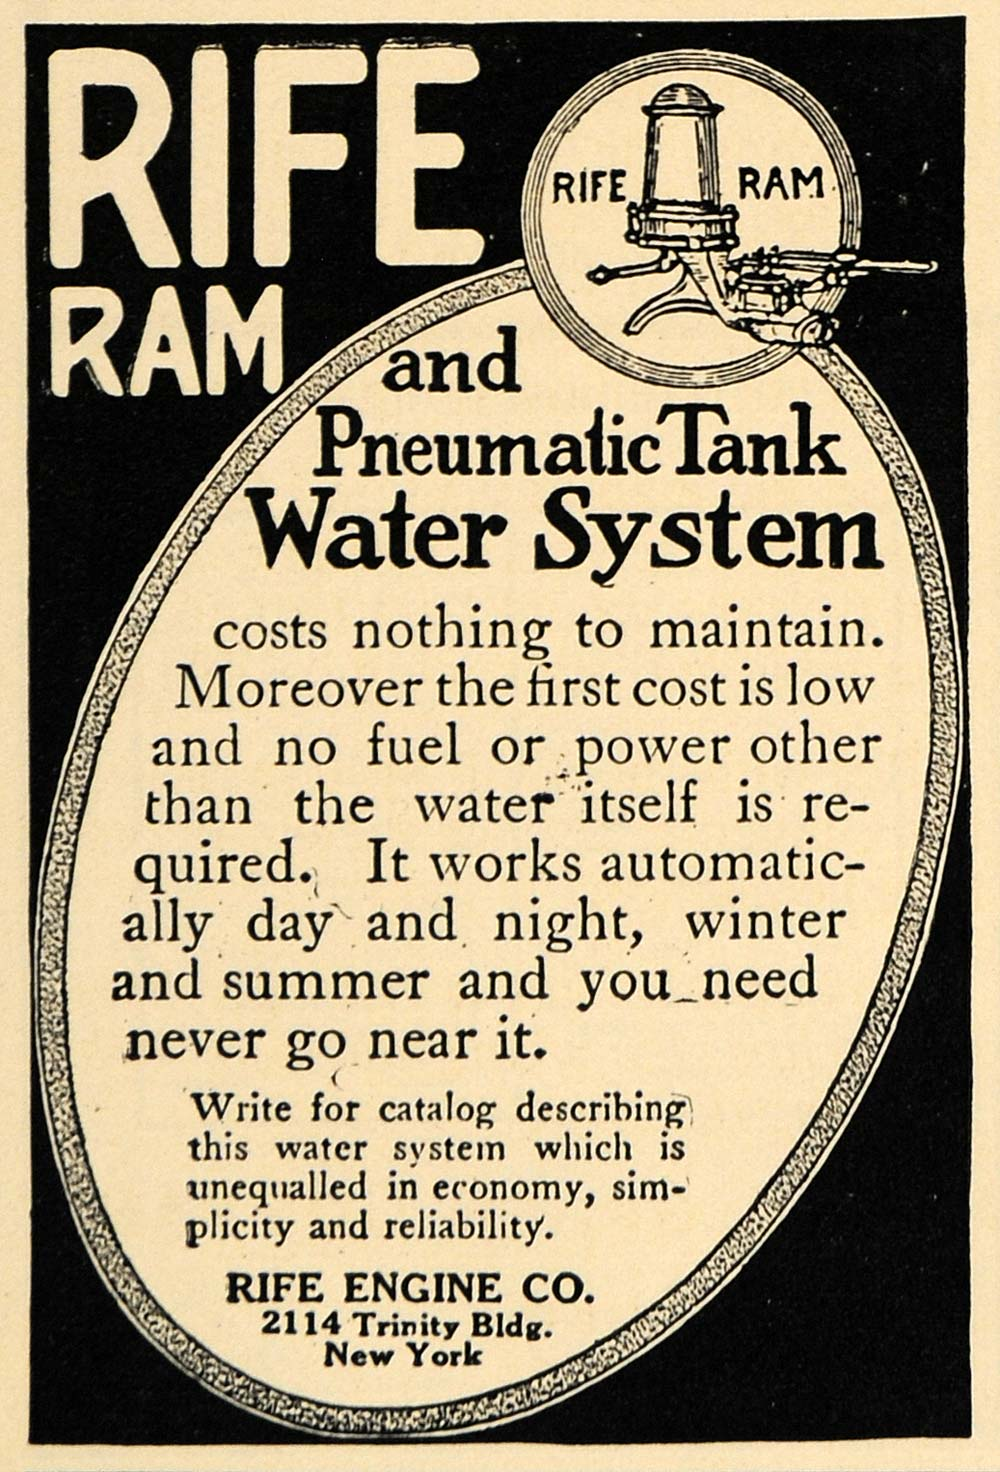 1912 Ad Rife Engine Ram Pneumatic Tank Water System NY - ORIGINAL TW1